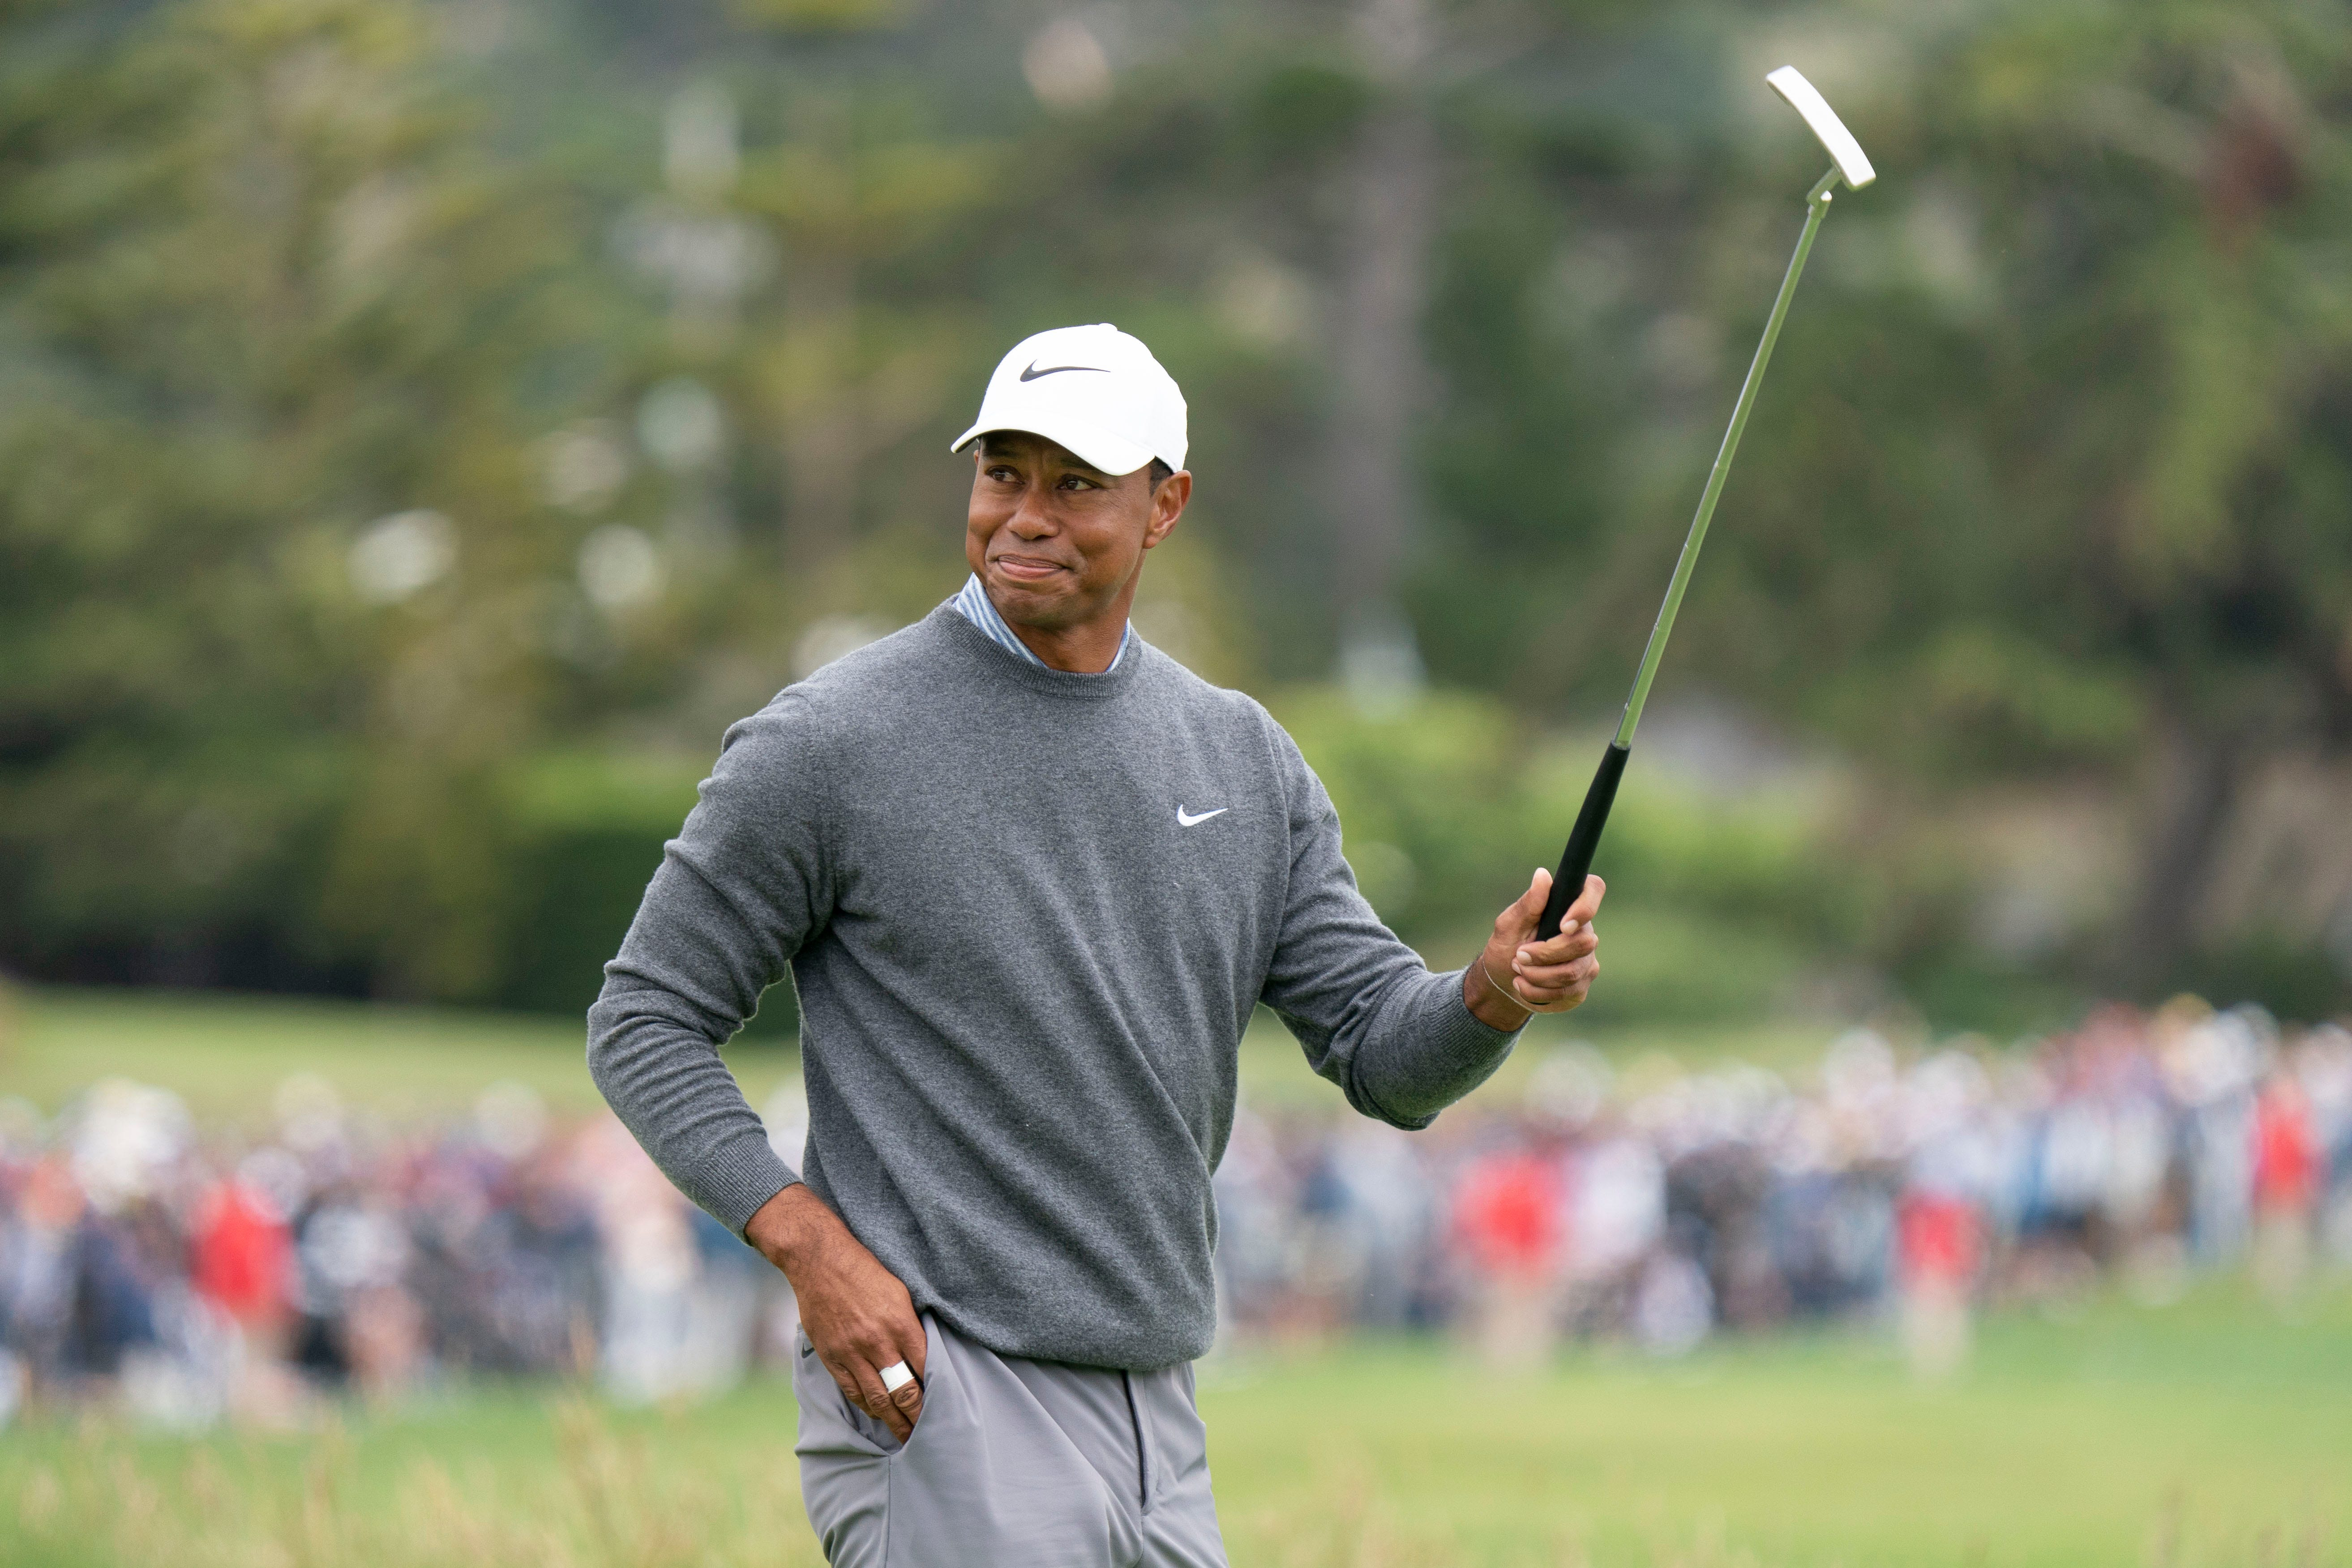 tiger woods rises early to prepare for british open at royal portrush